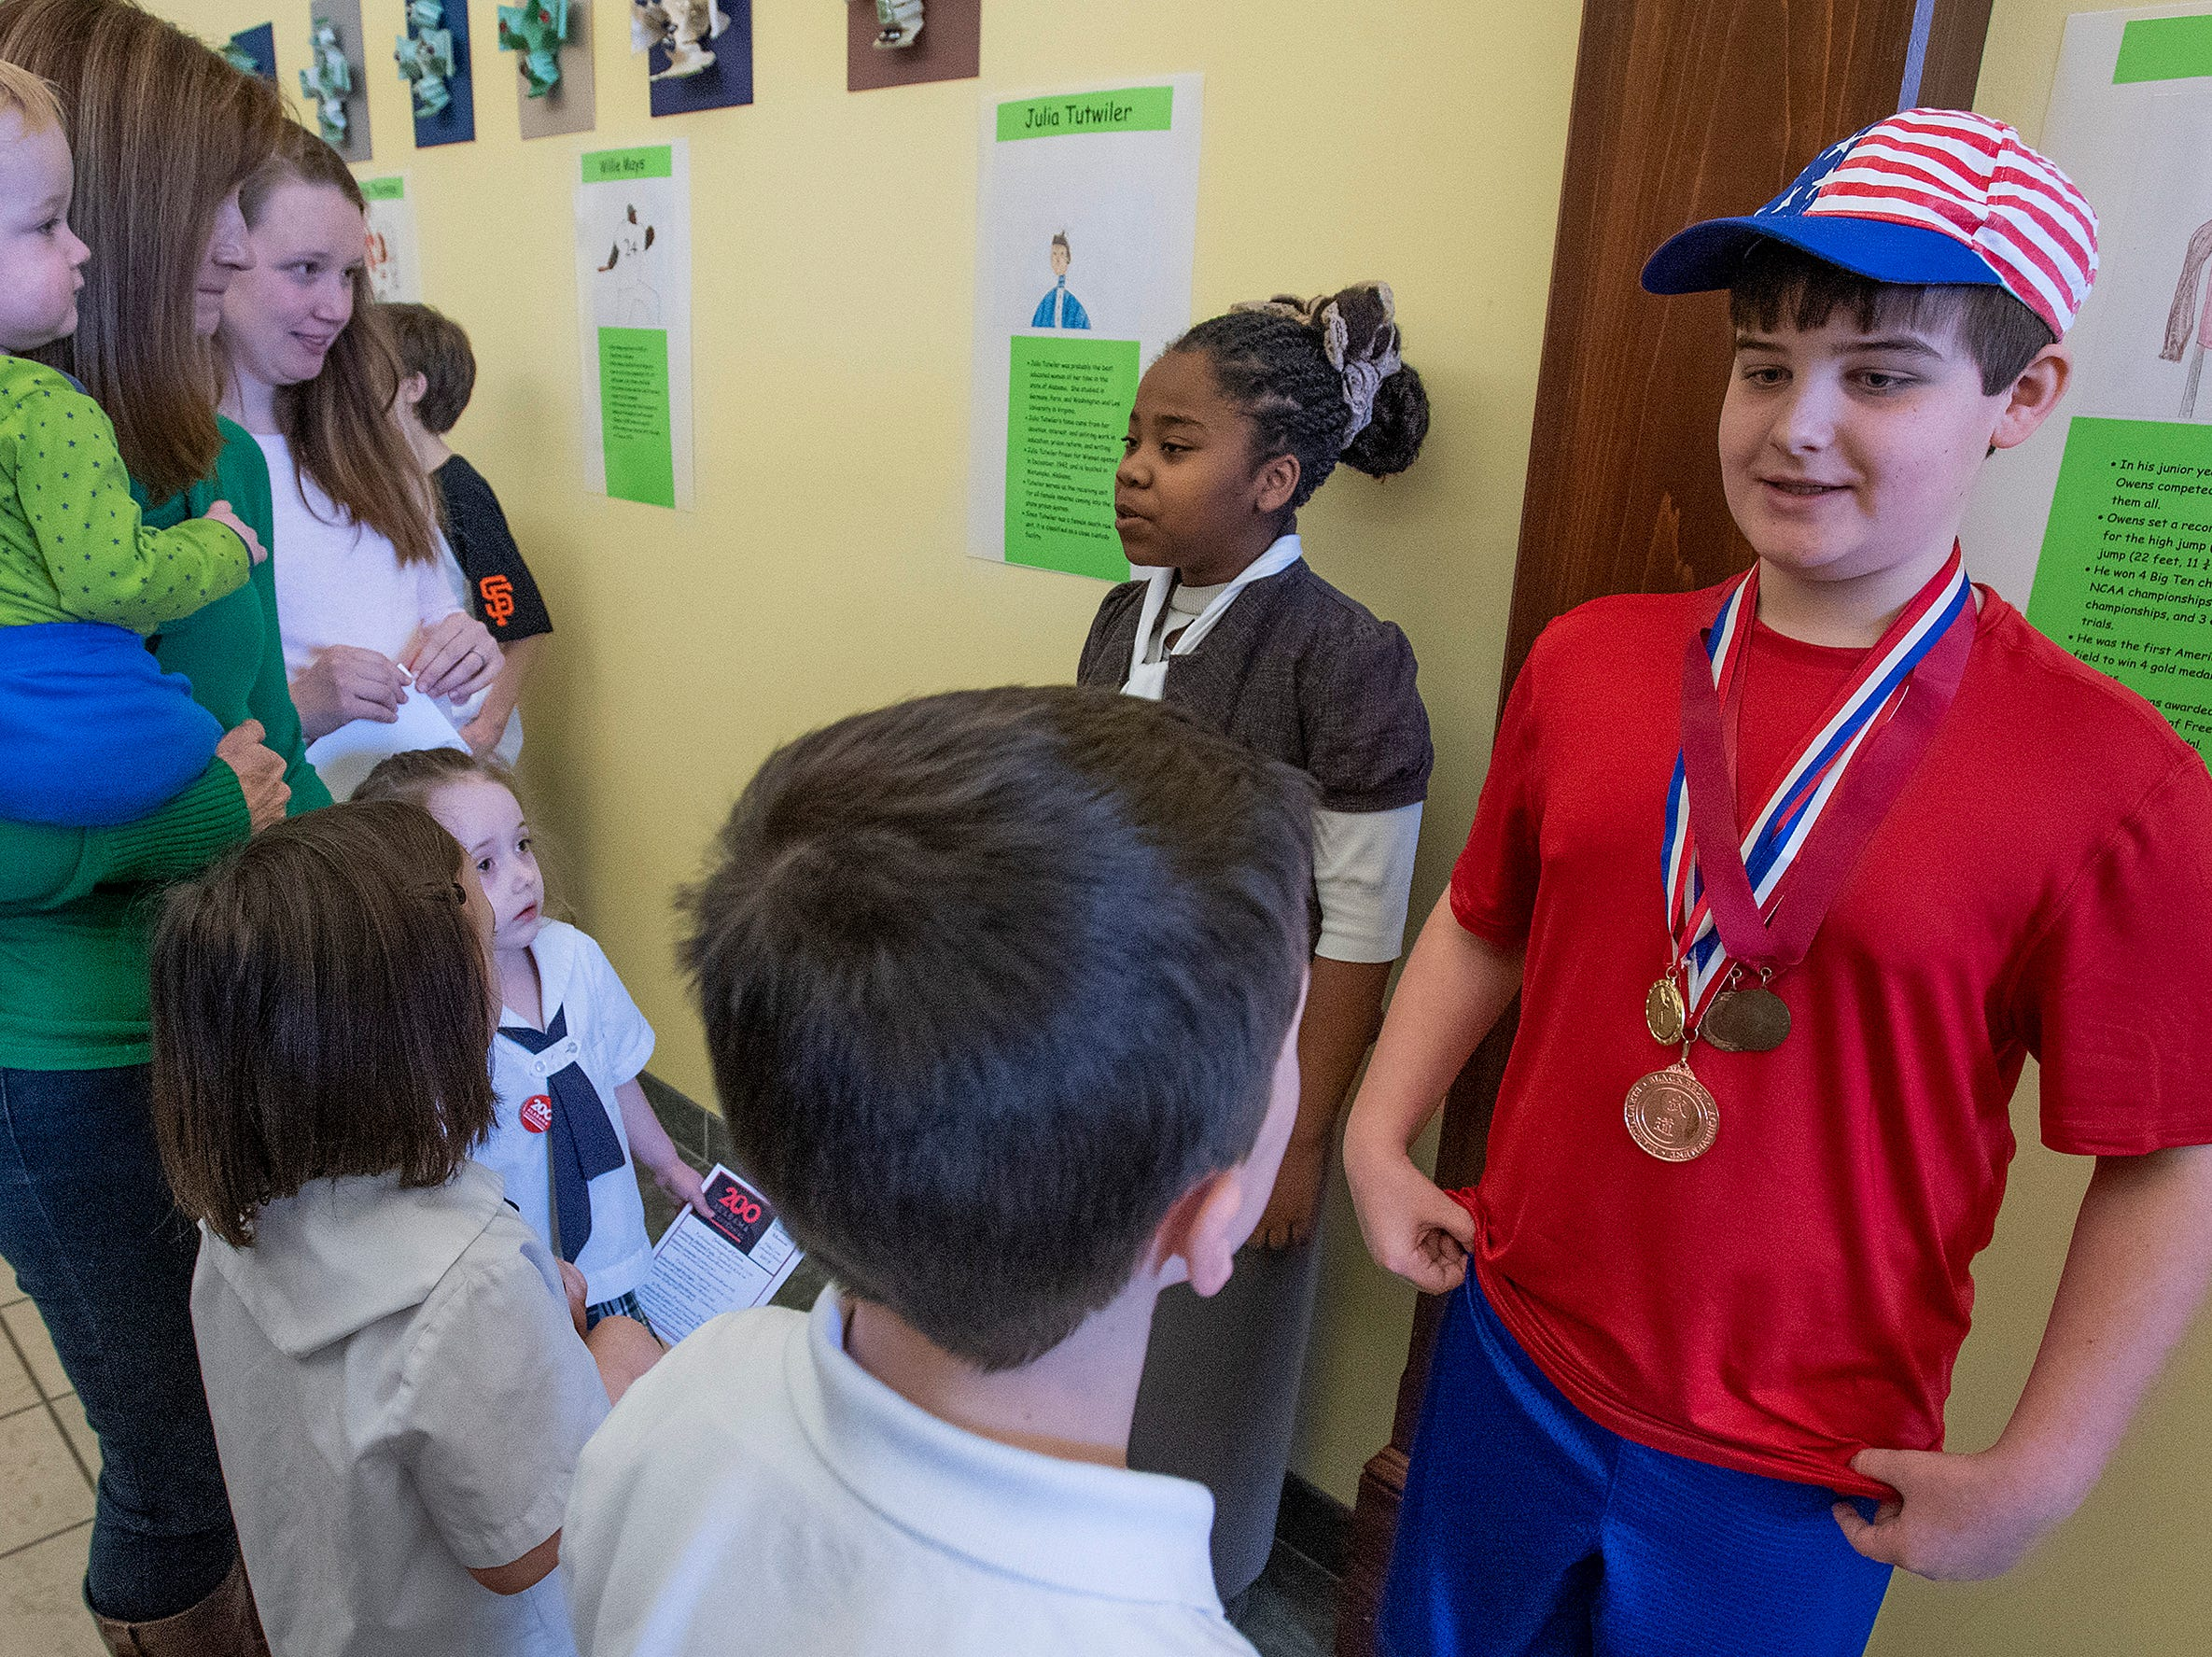 Sanai Burton plays Julia Tutwiler and Gabe Krause plays Jesse Owens as students portray Alabamians in their Alabama Bicentennial Wax Museum, telling the stories of their characters to visitors, at Holy Cross Episcopal School in Montgomery, Ala., on Friday February 15, 2019.